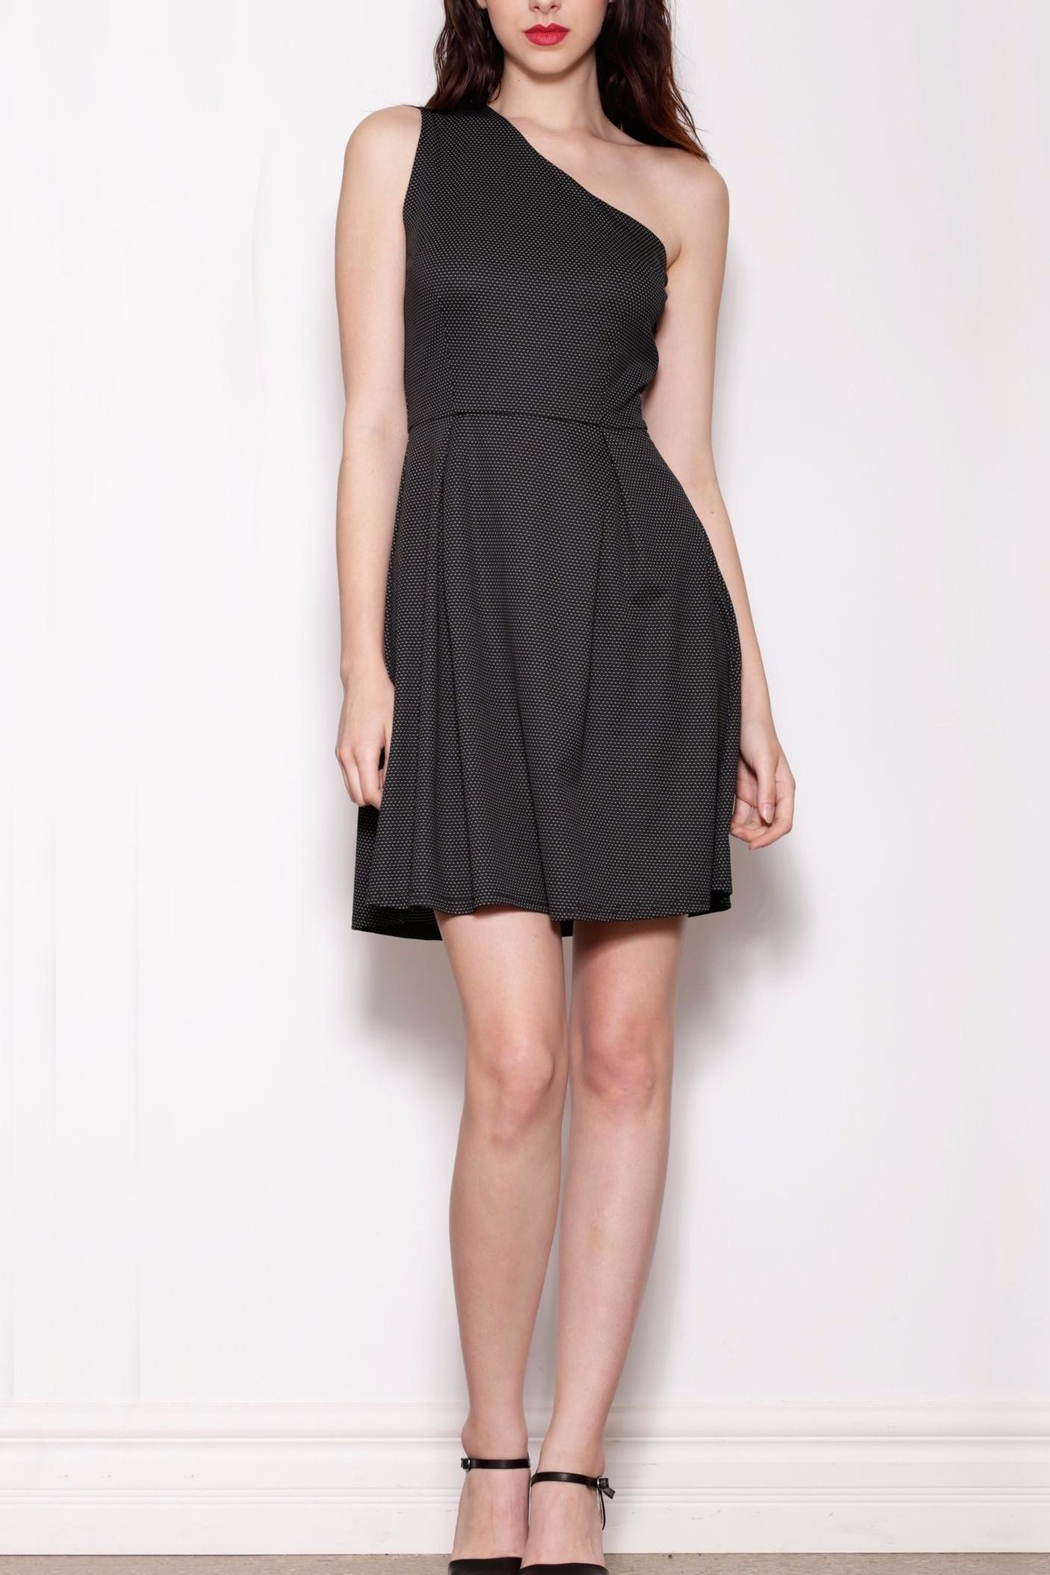 Pink Martini Collection One Shoulder Dress - Main Image